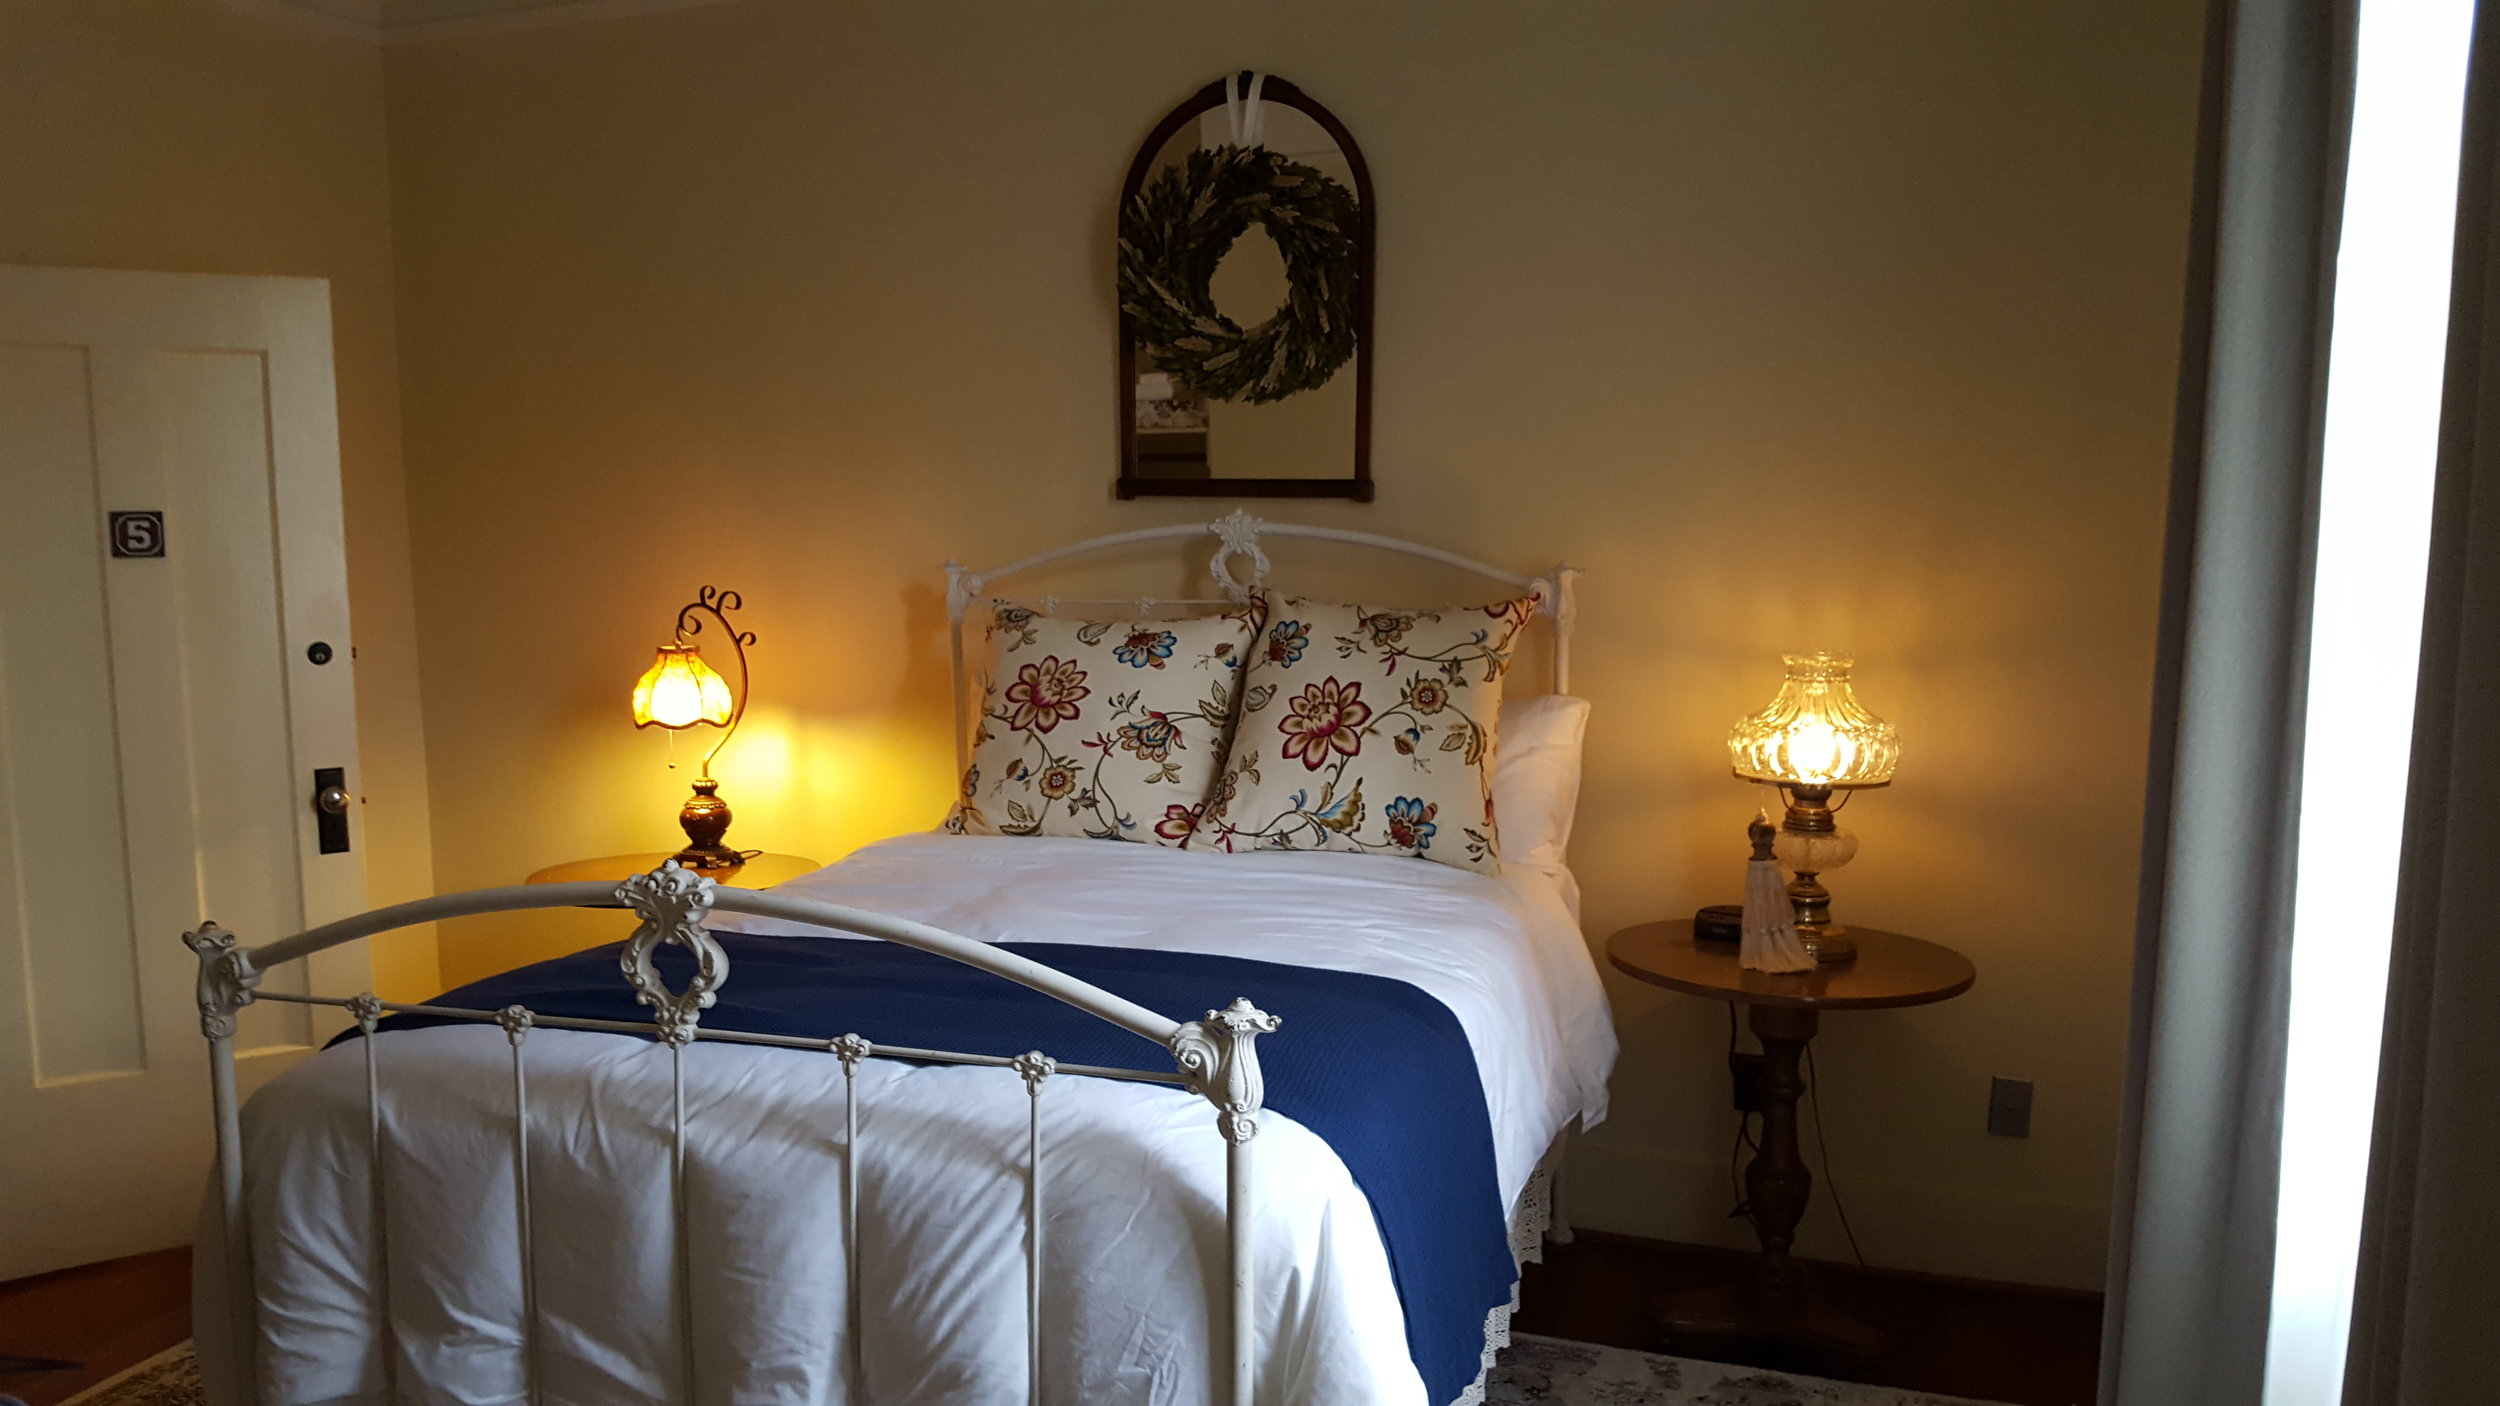 Wolf Creek Inn - What to do in Southern Oregon